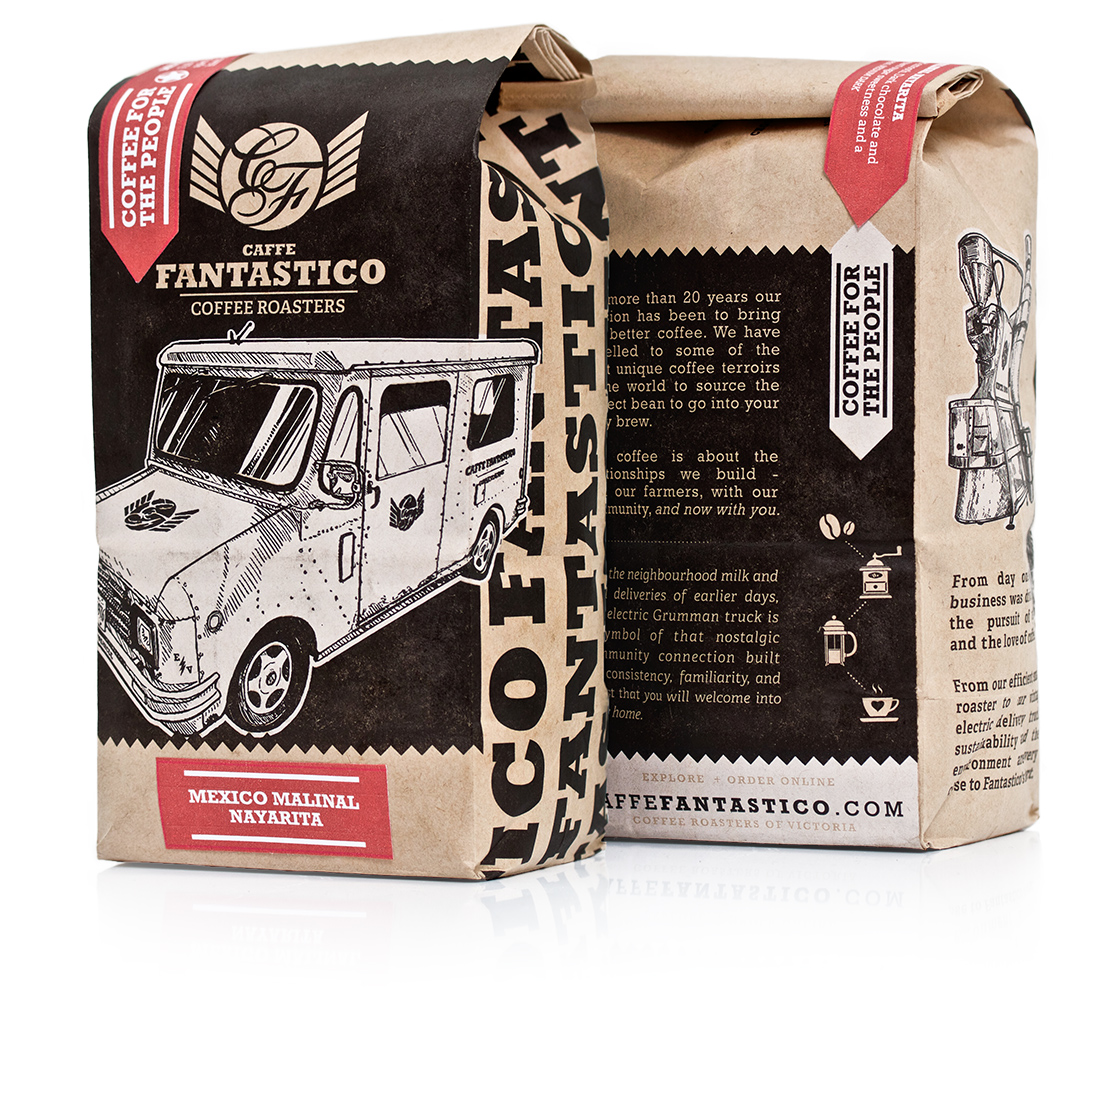 Caffe Fantastico coffee bags